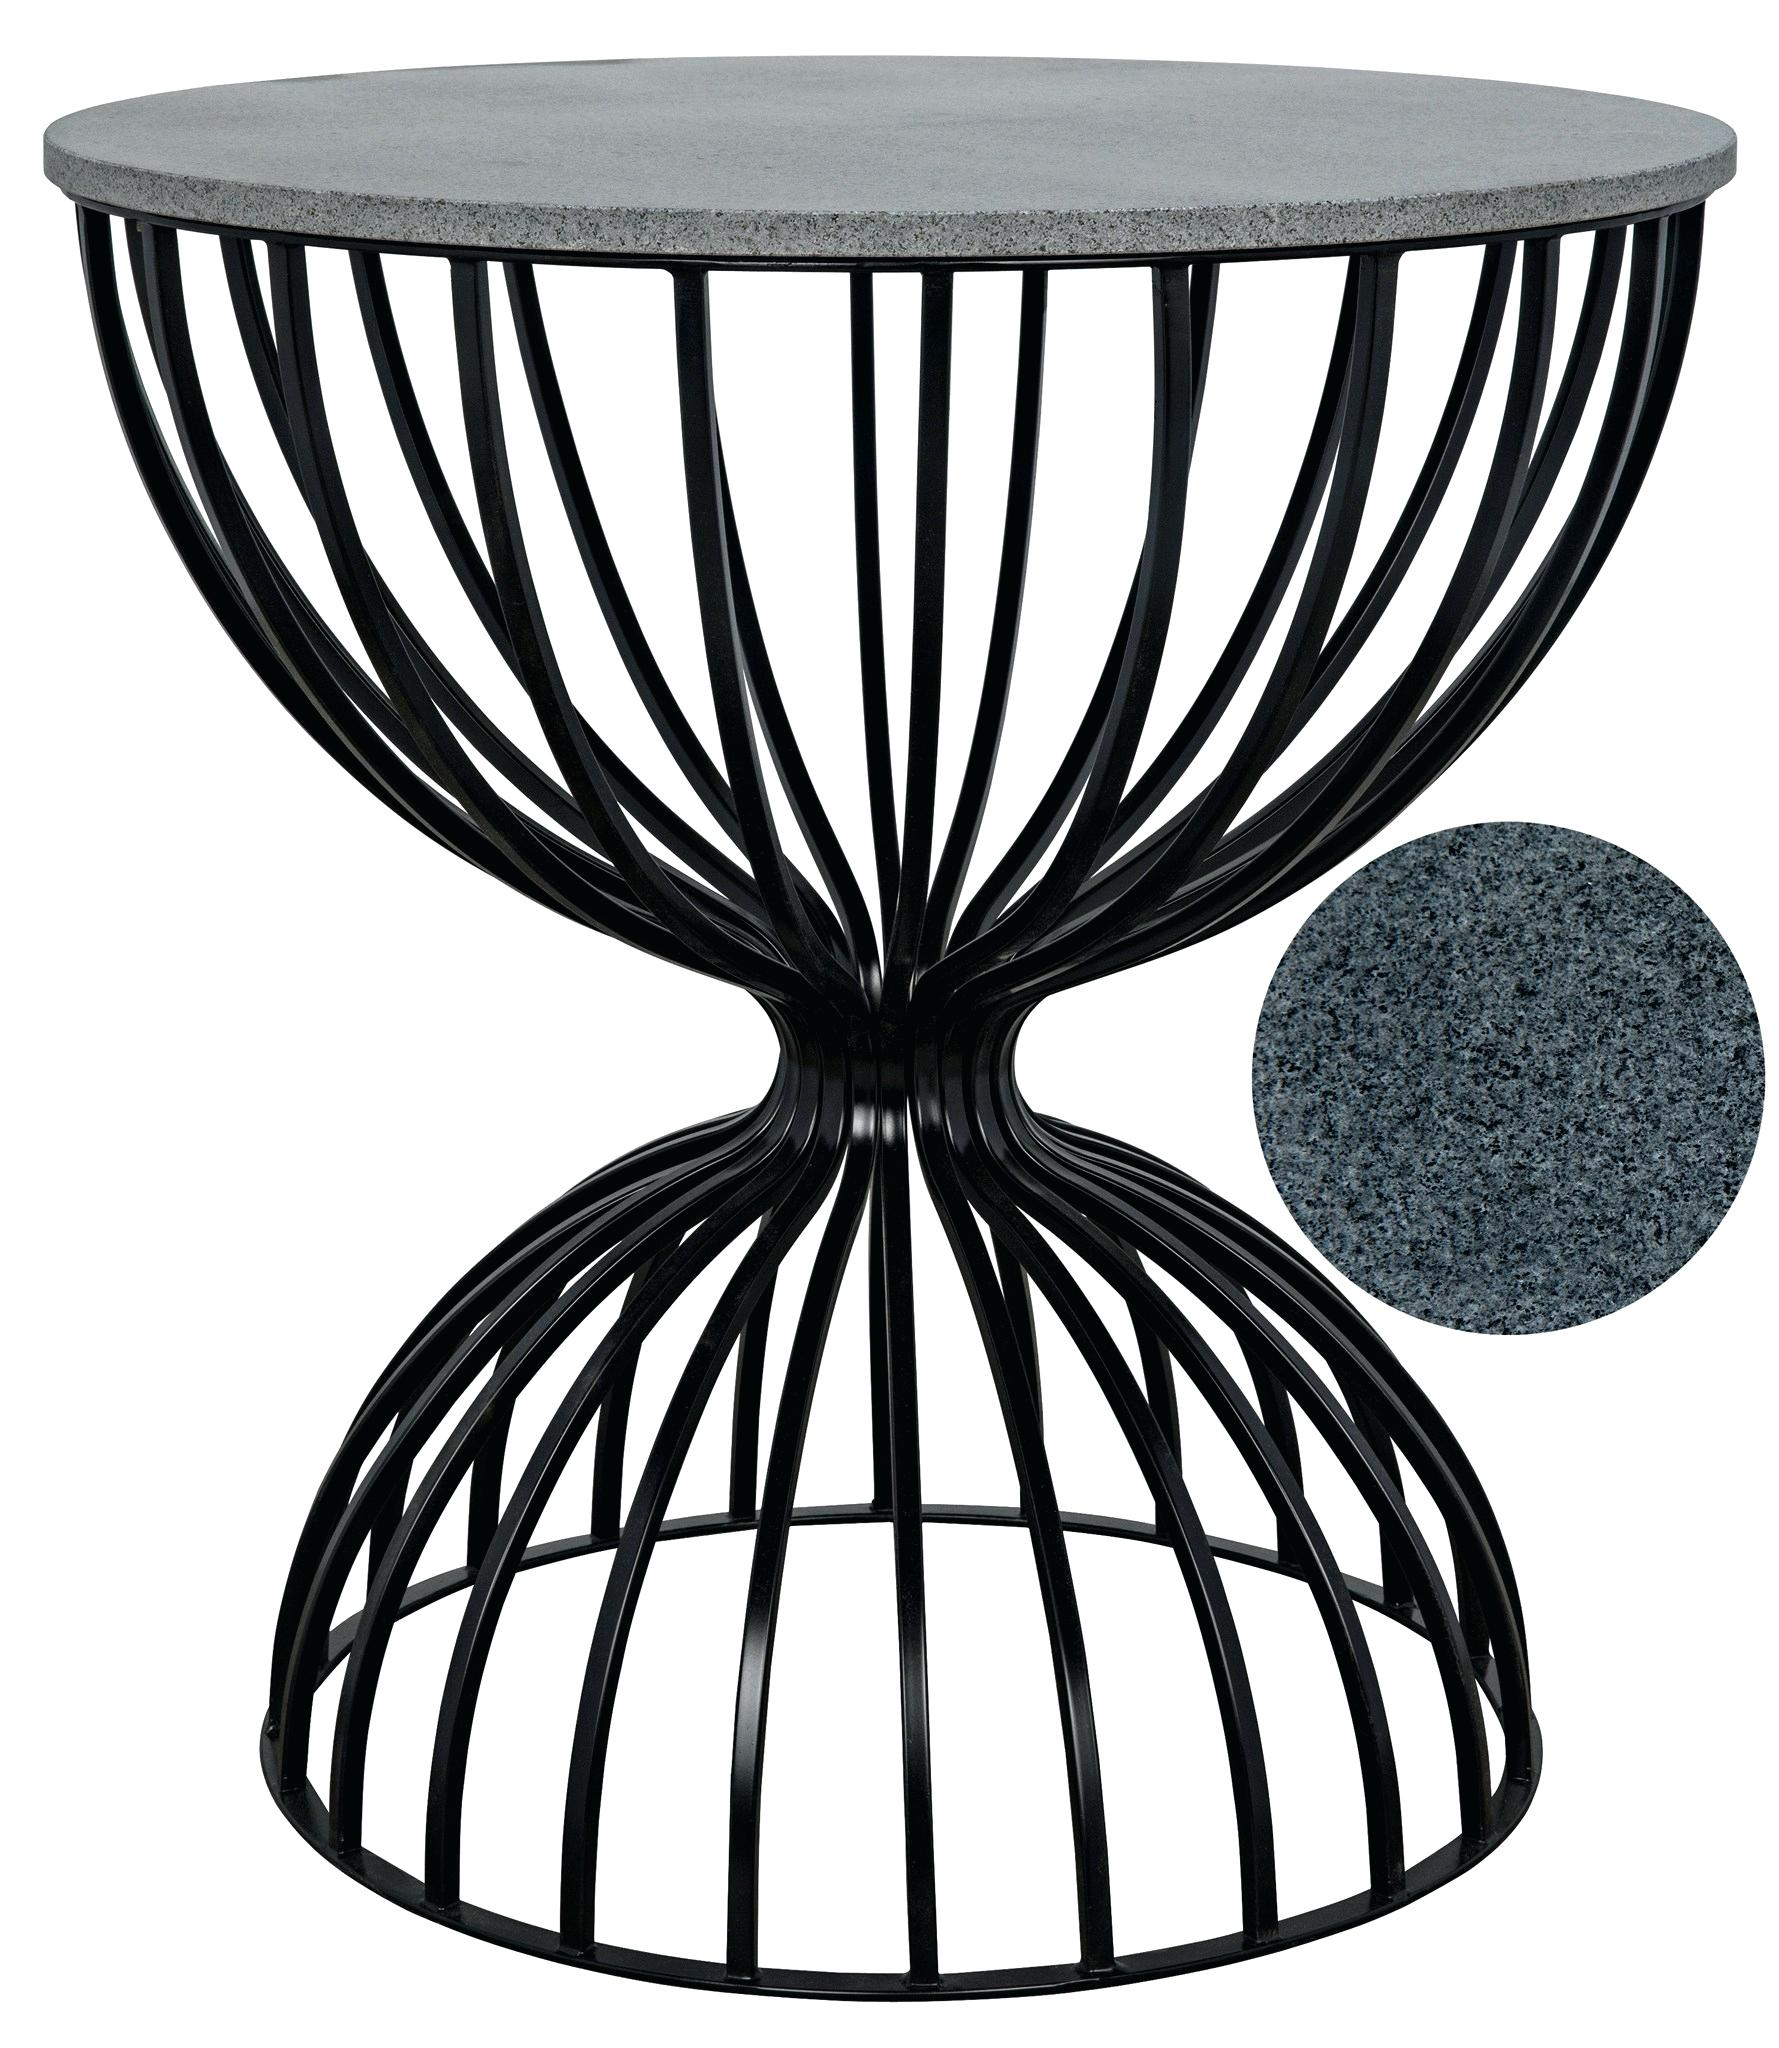 hourglass accent table threshold side metal and stone tables chpcls lamps that run batteries target small coffee runner rugs best bedroom furniture tray set apartment decor with